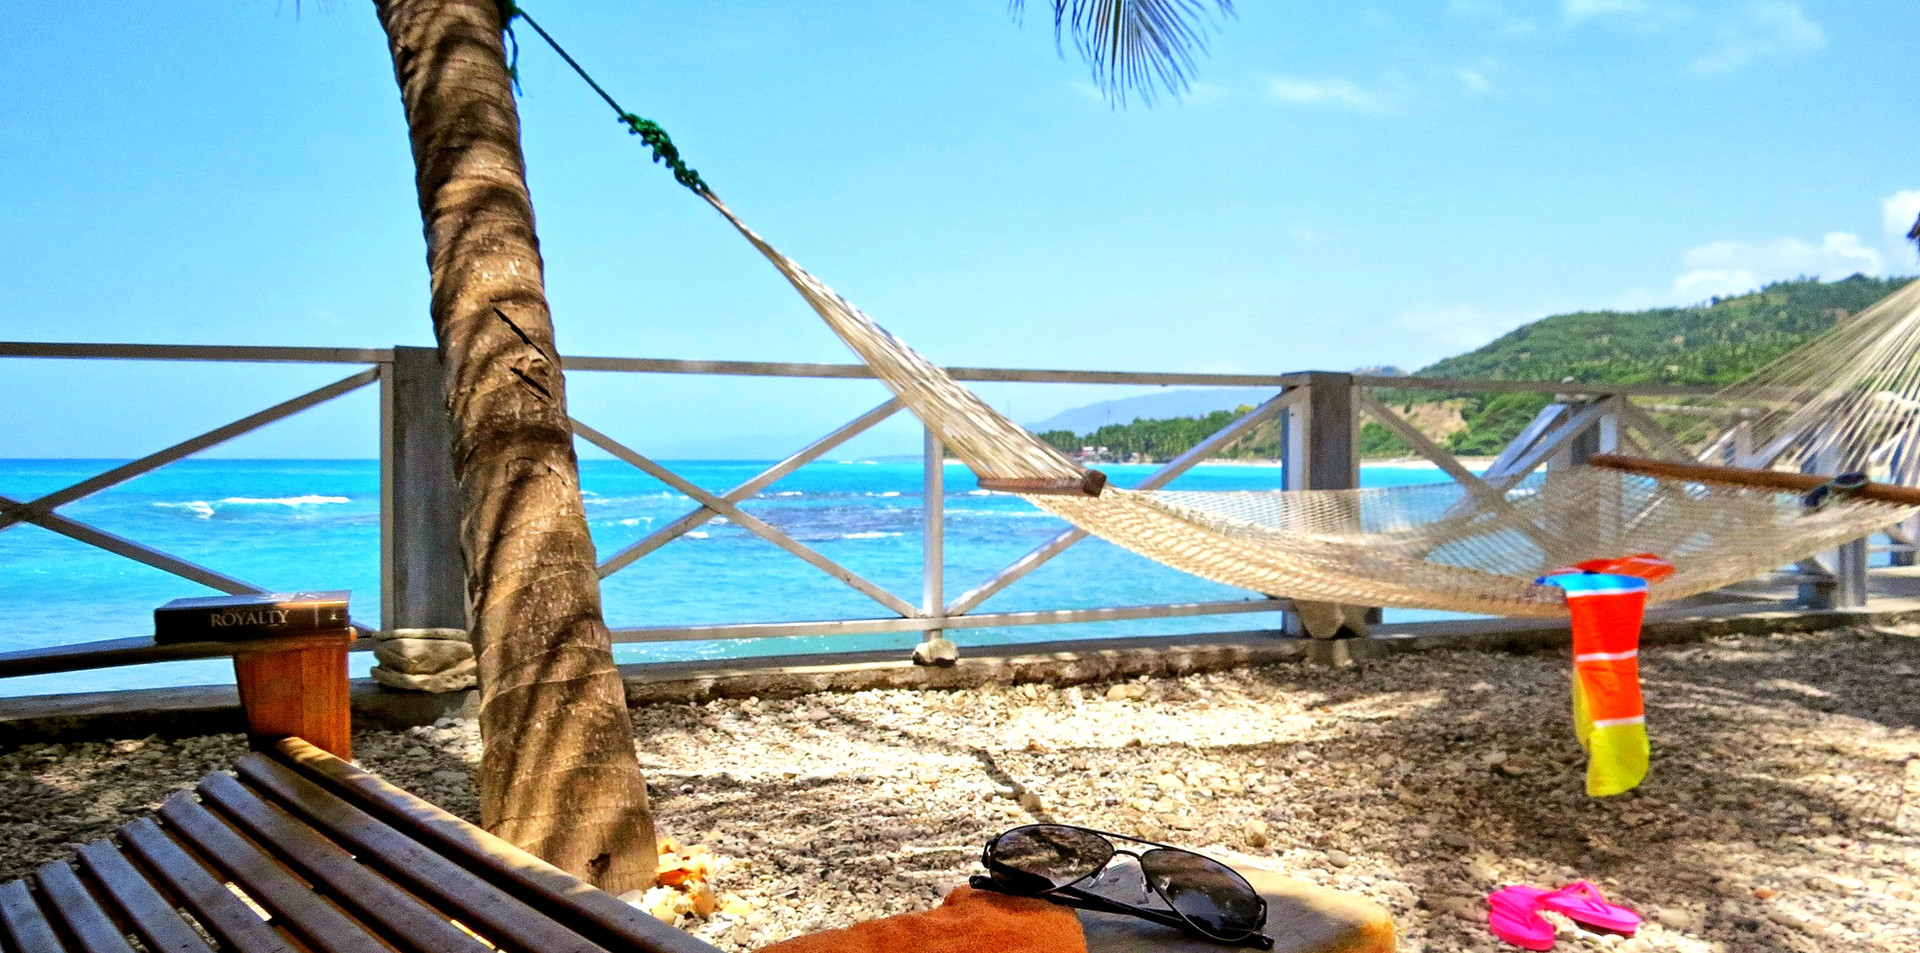 Lounge chair or hammock. Which will it be?